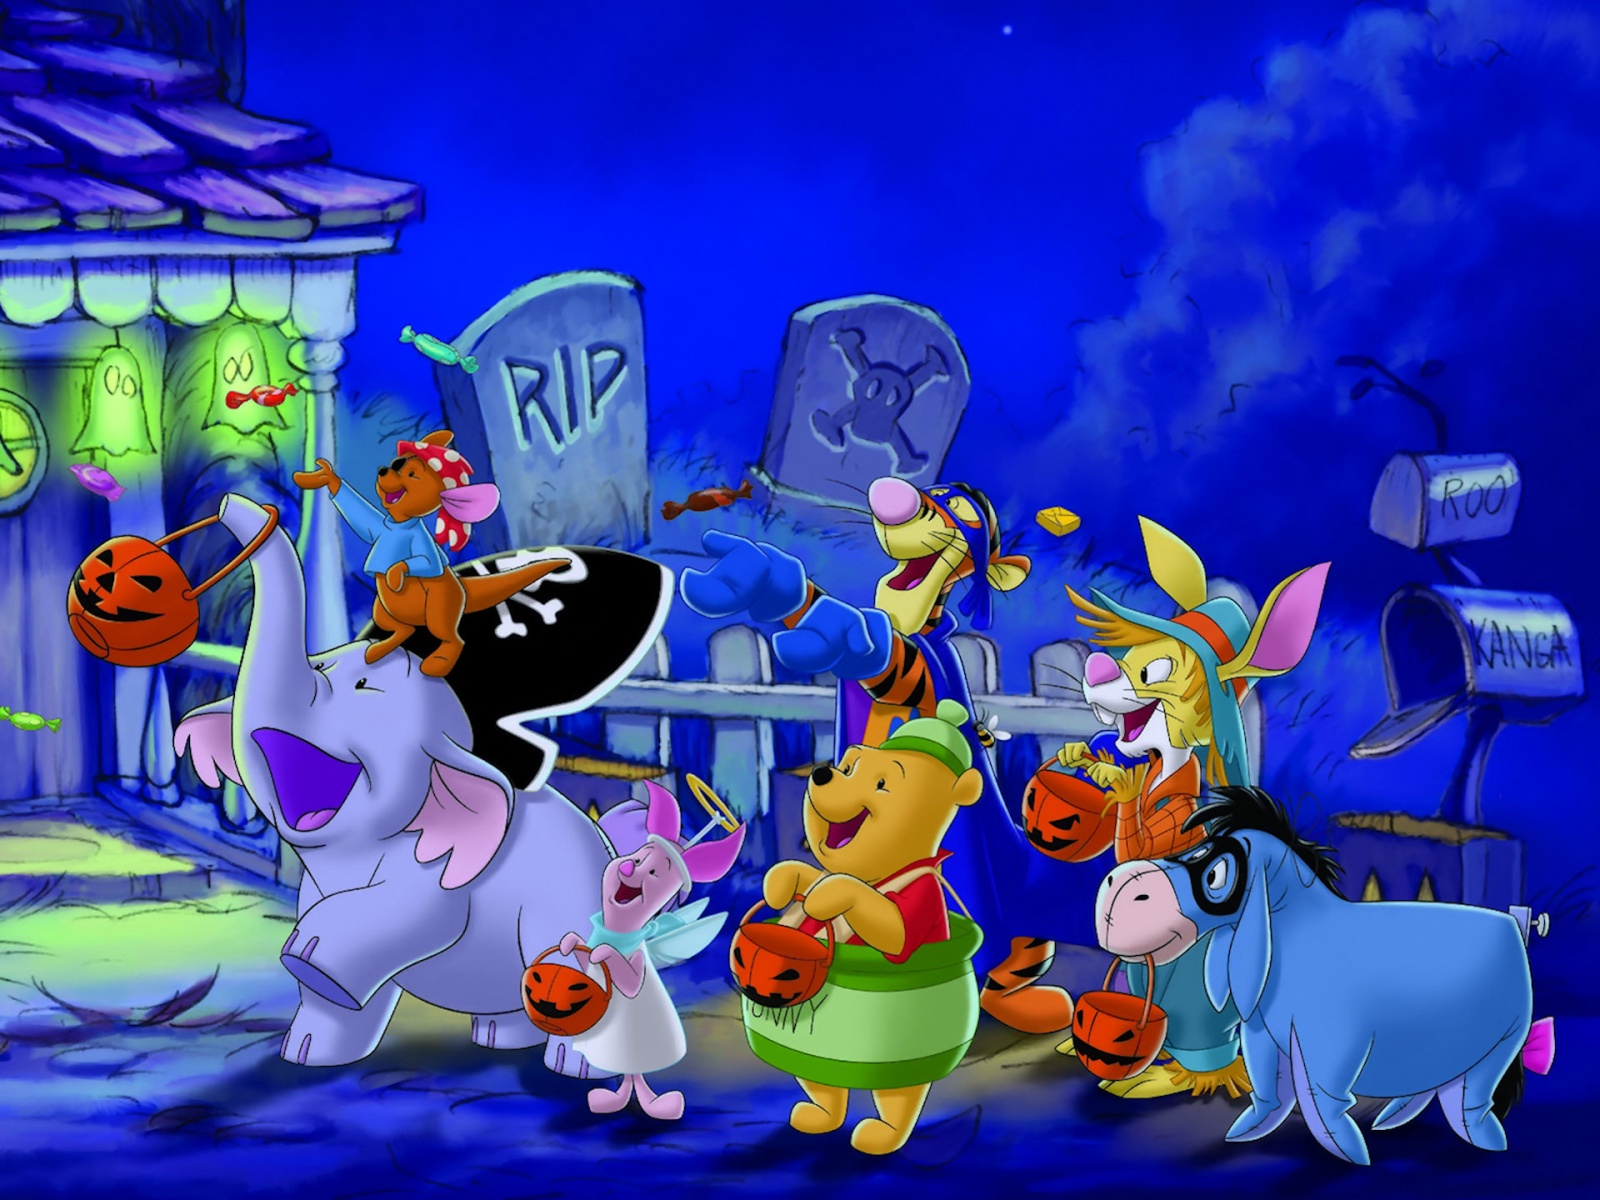 Happy Halloween Wallpaper Disney wallpaper wallpaper hd 1600x1200